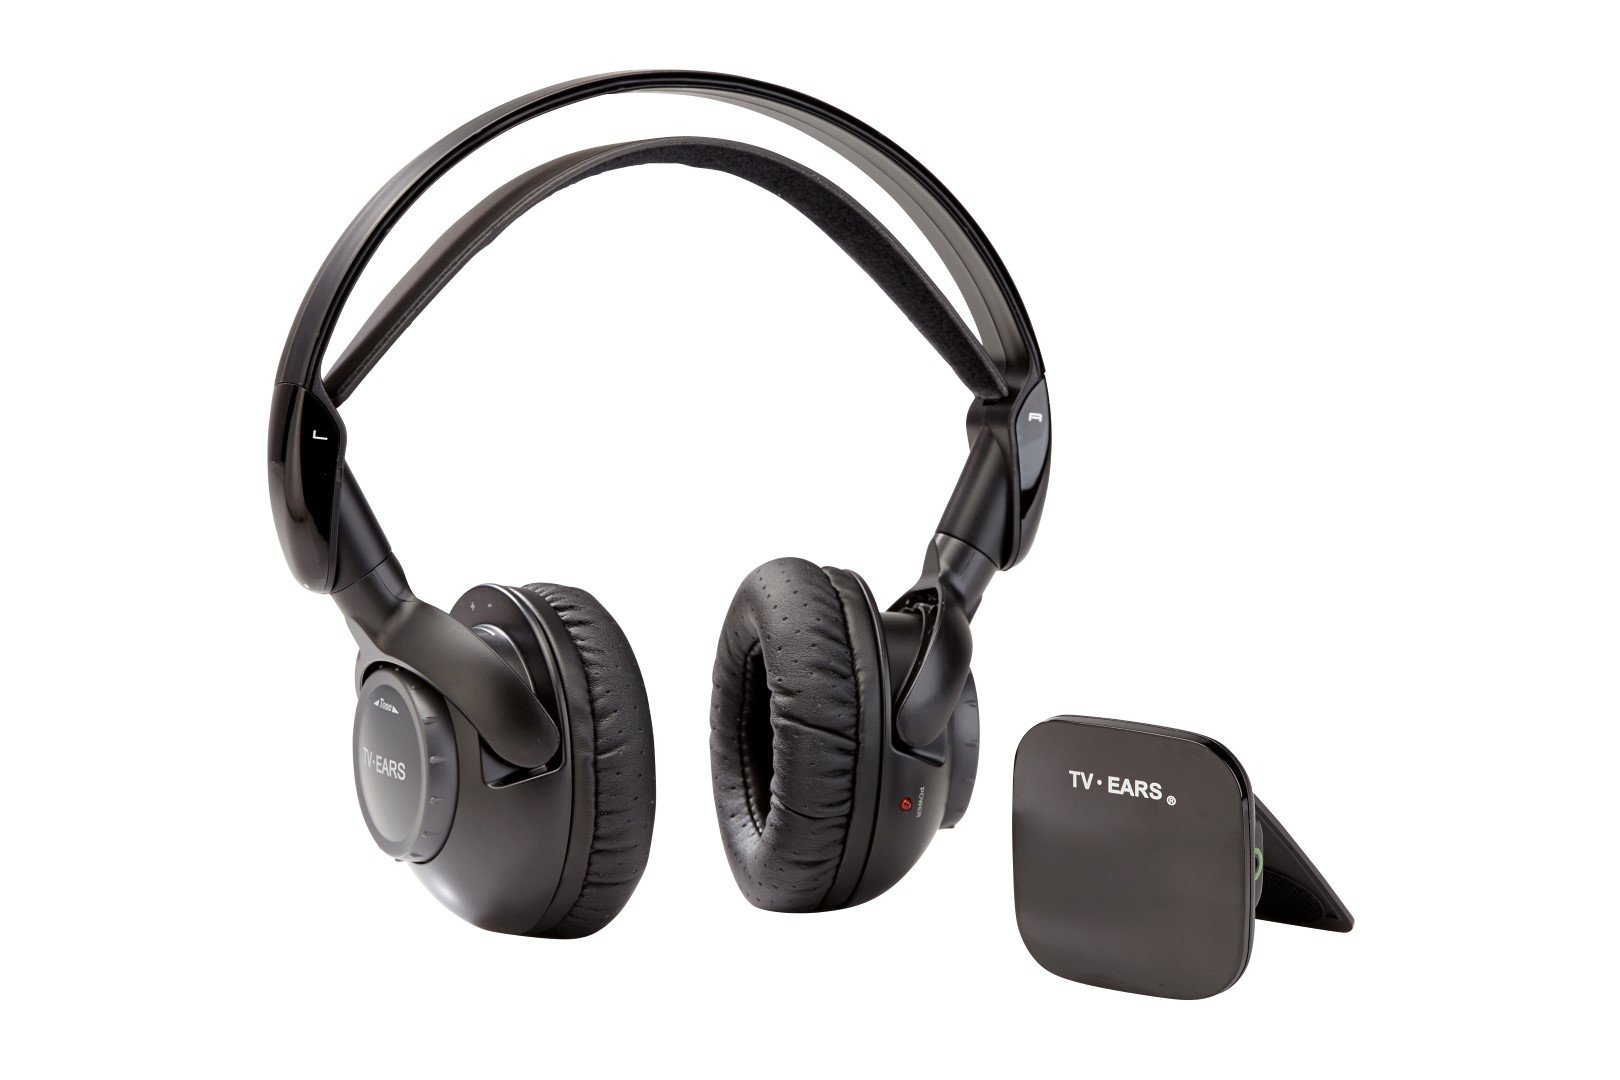 TV Ears HD Headphones System - Wireless Voice Clarifying Doctor Recommended Headphones for TV Black (12241) by TV Ears Inc